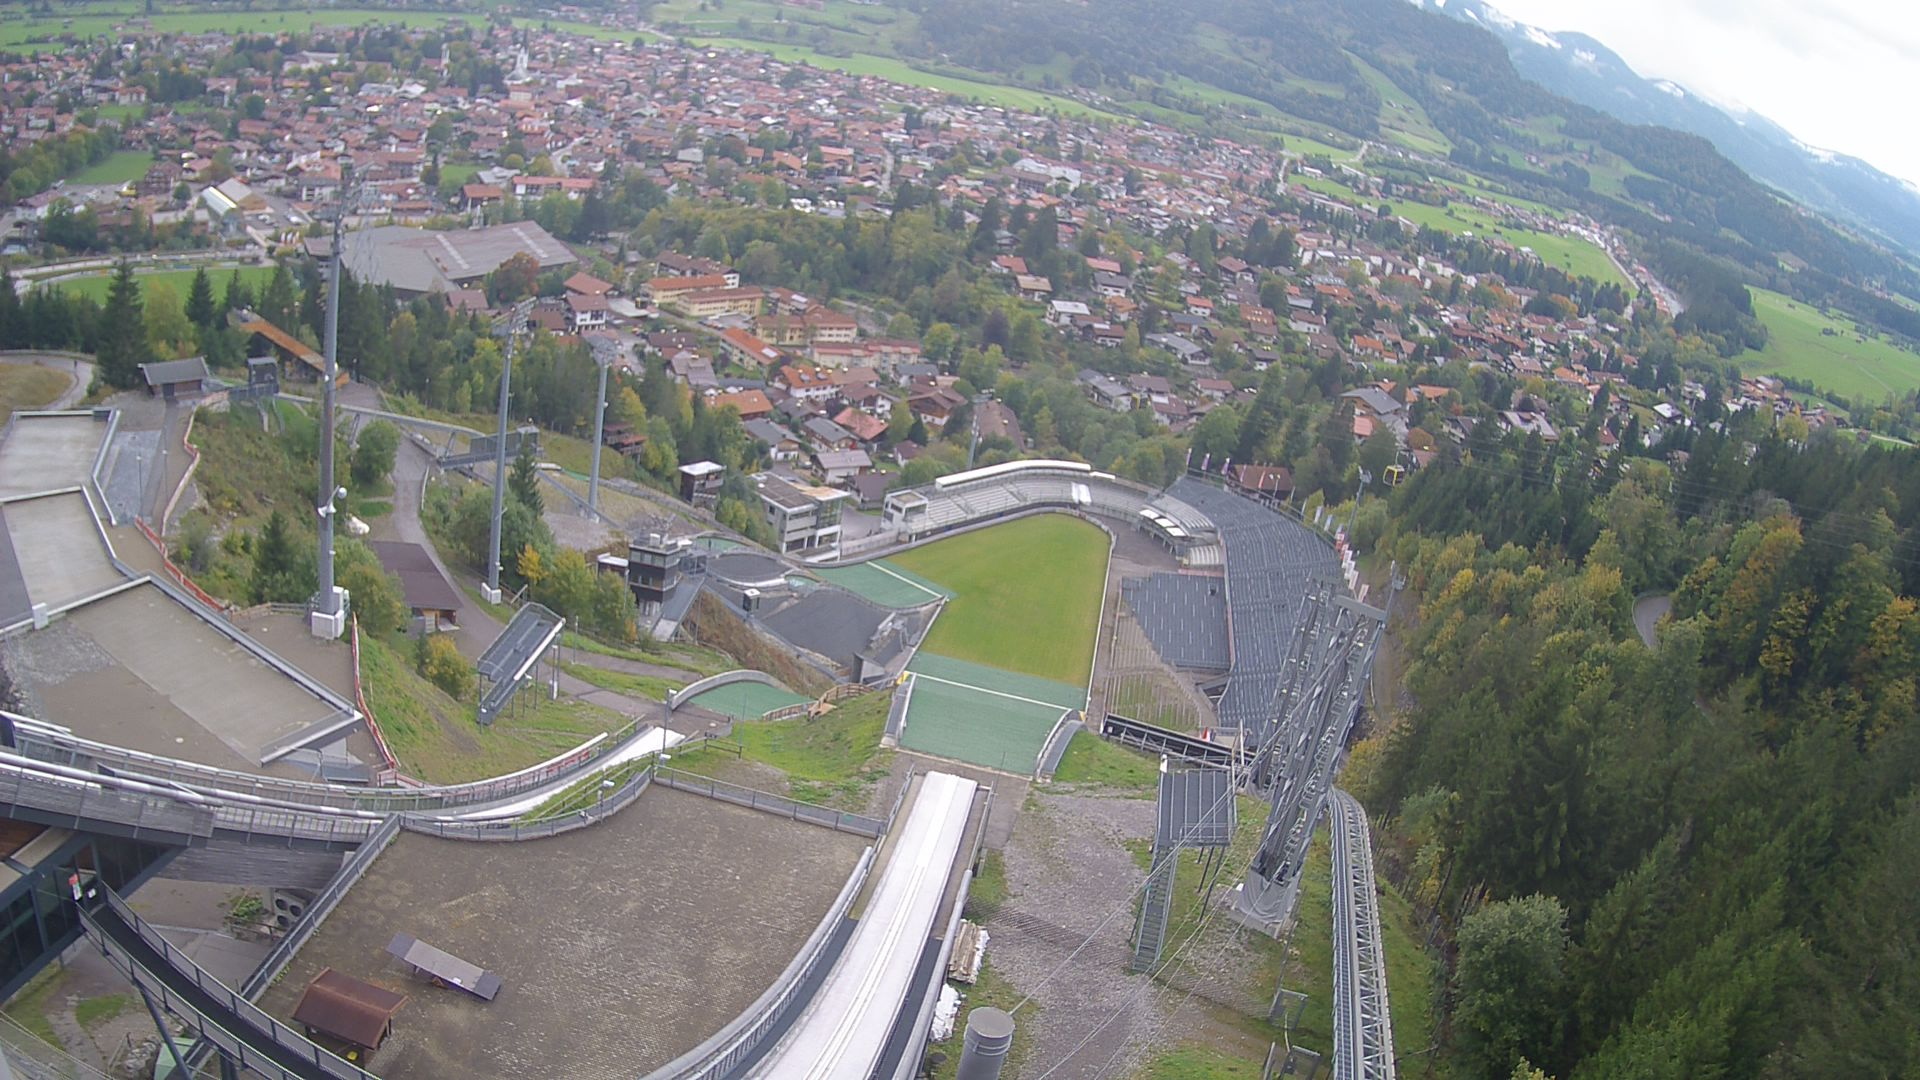 Webcam: Audi Arena